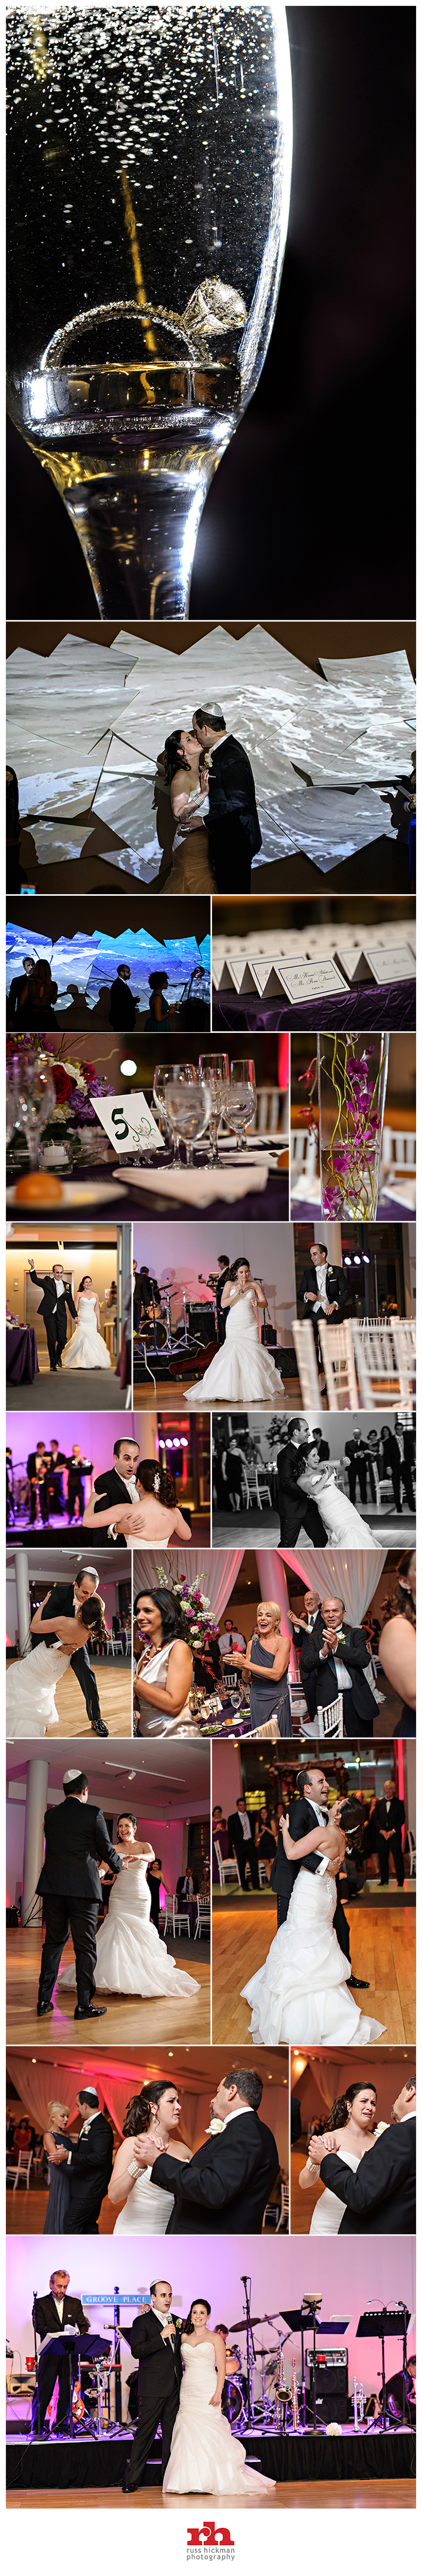 Philadelphia Wedding Photographer JAWBlog011